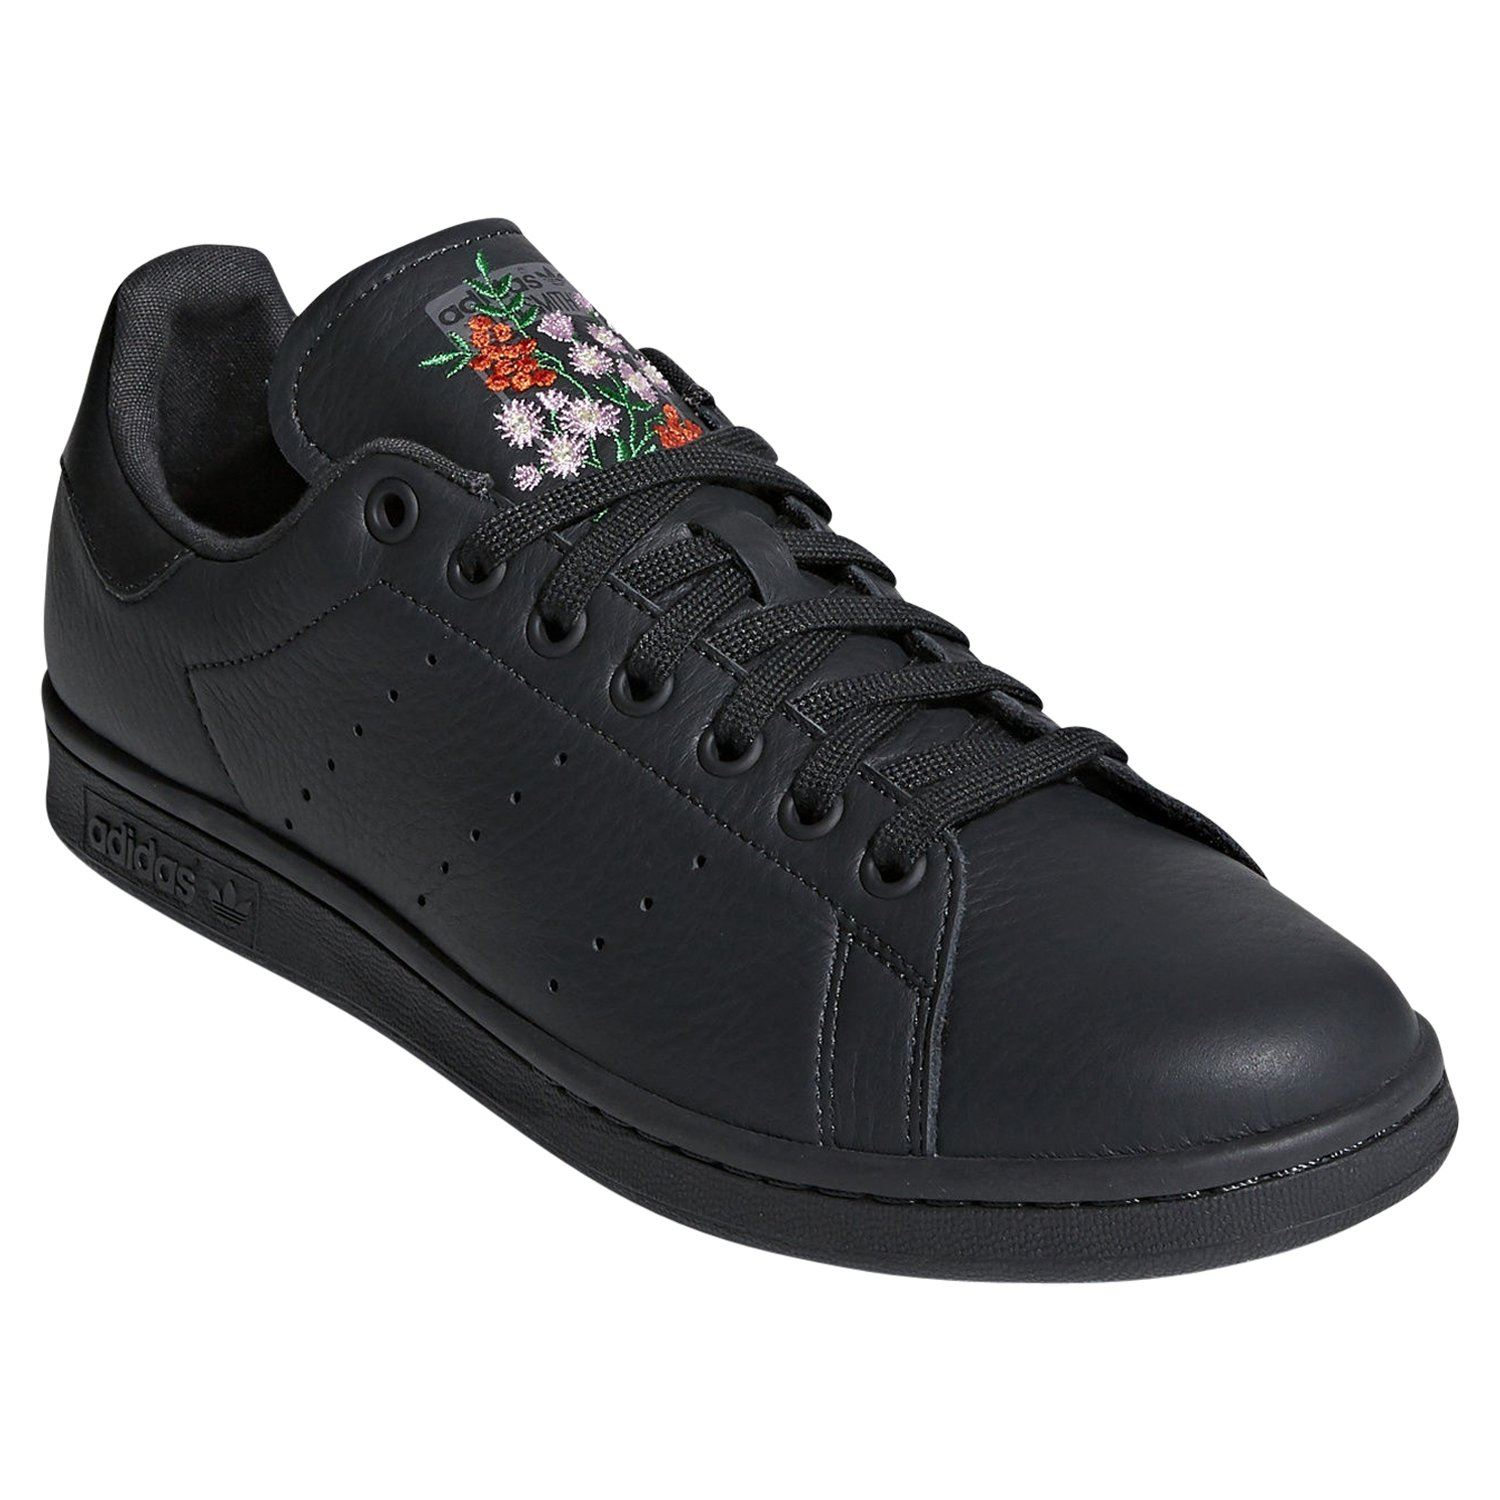 free shipping a2c95 7bcc7 Details about adidas ORIGINALS STAN SMITH PREMIUM BLACK FLORAL MEN'S  TRAINERS SHOES SNEAKERS